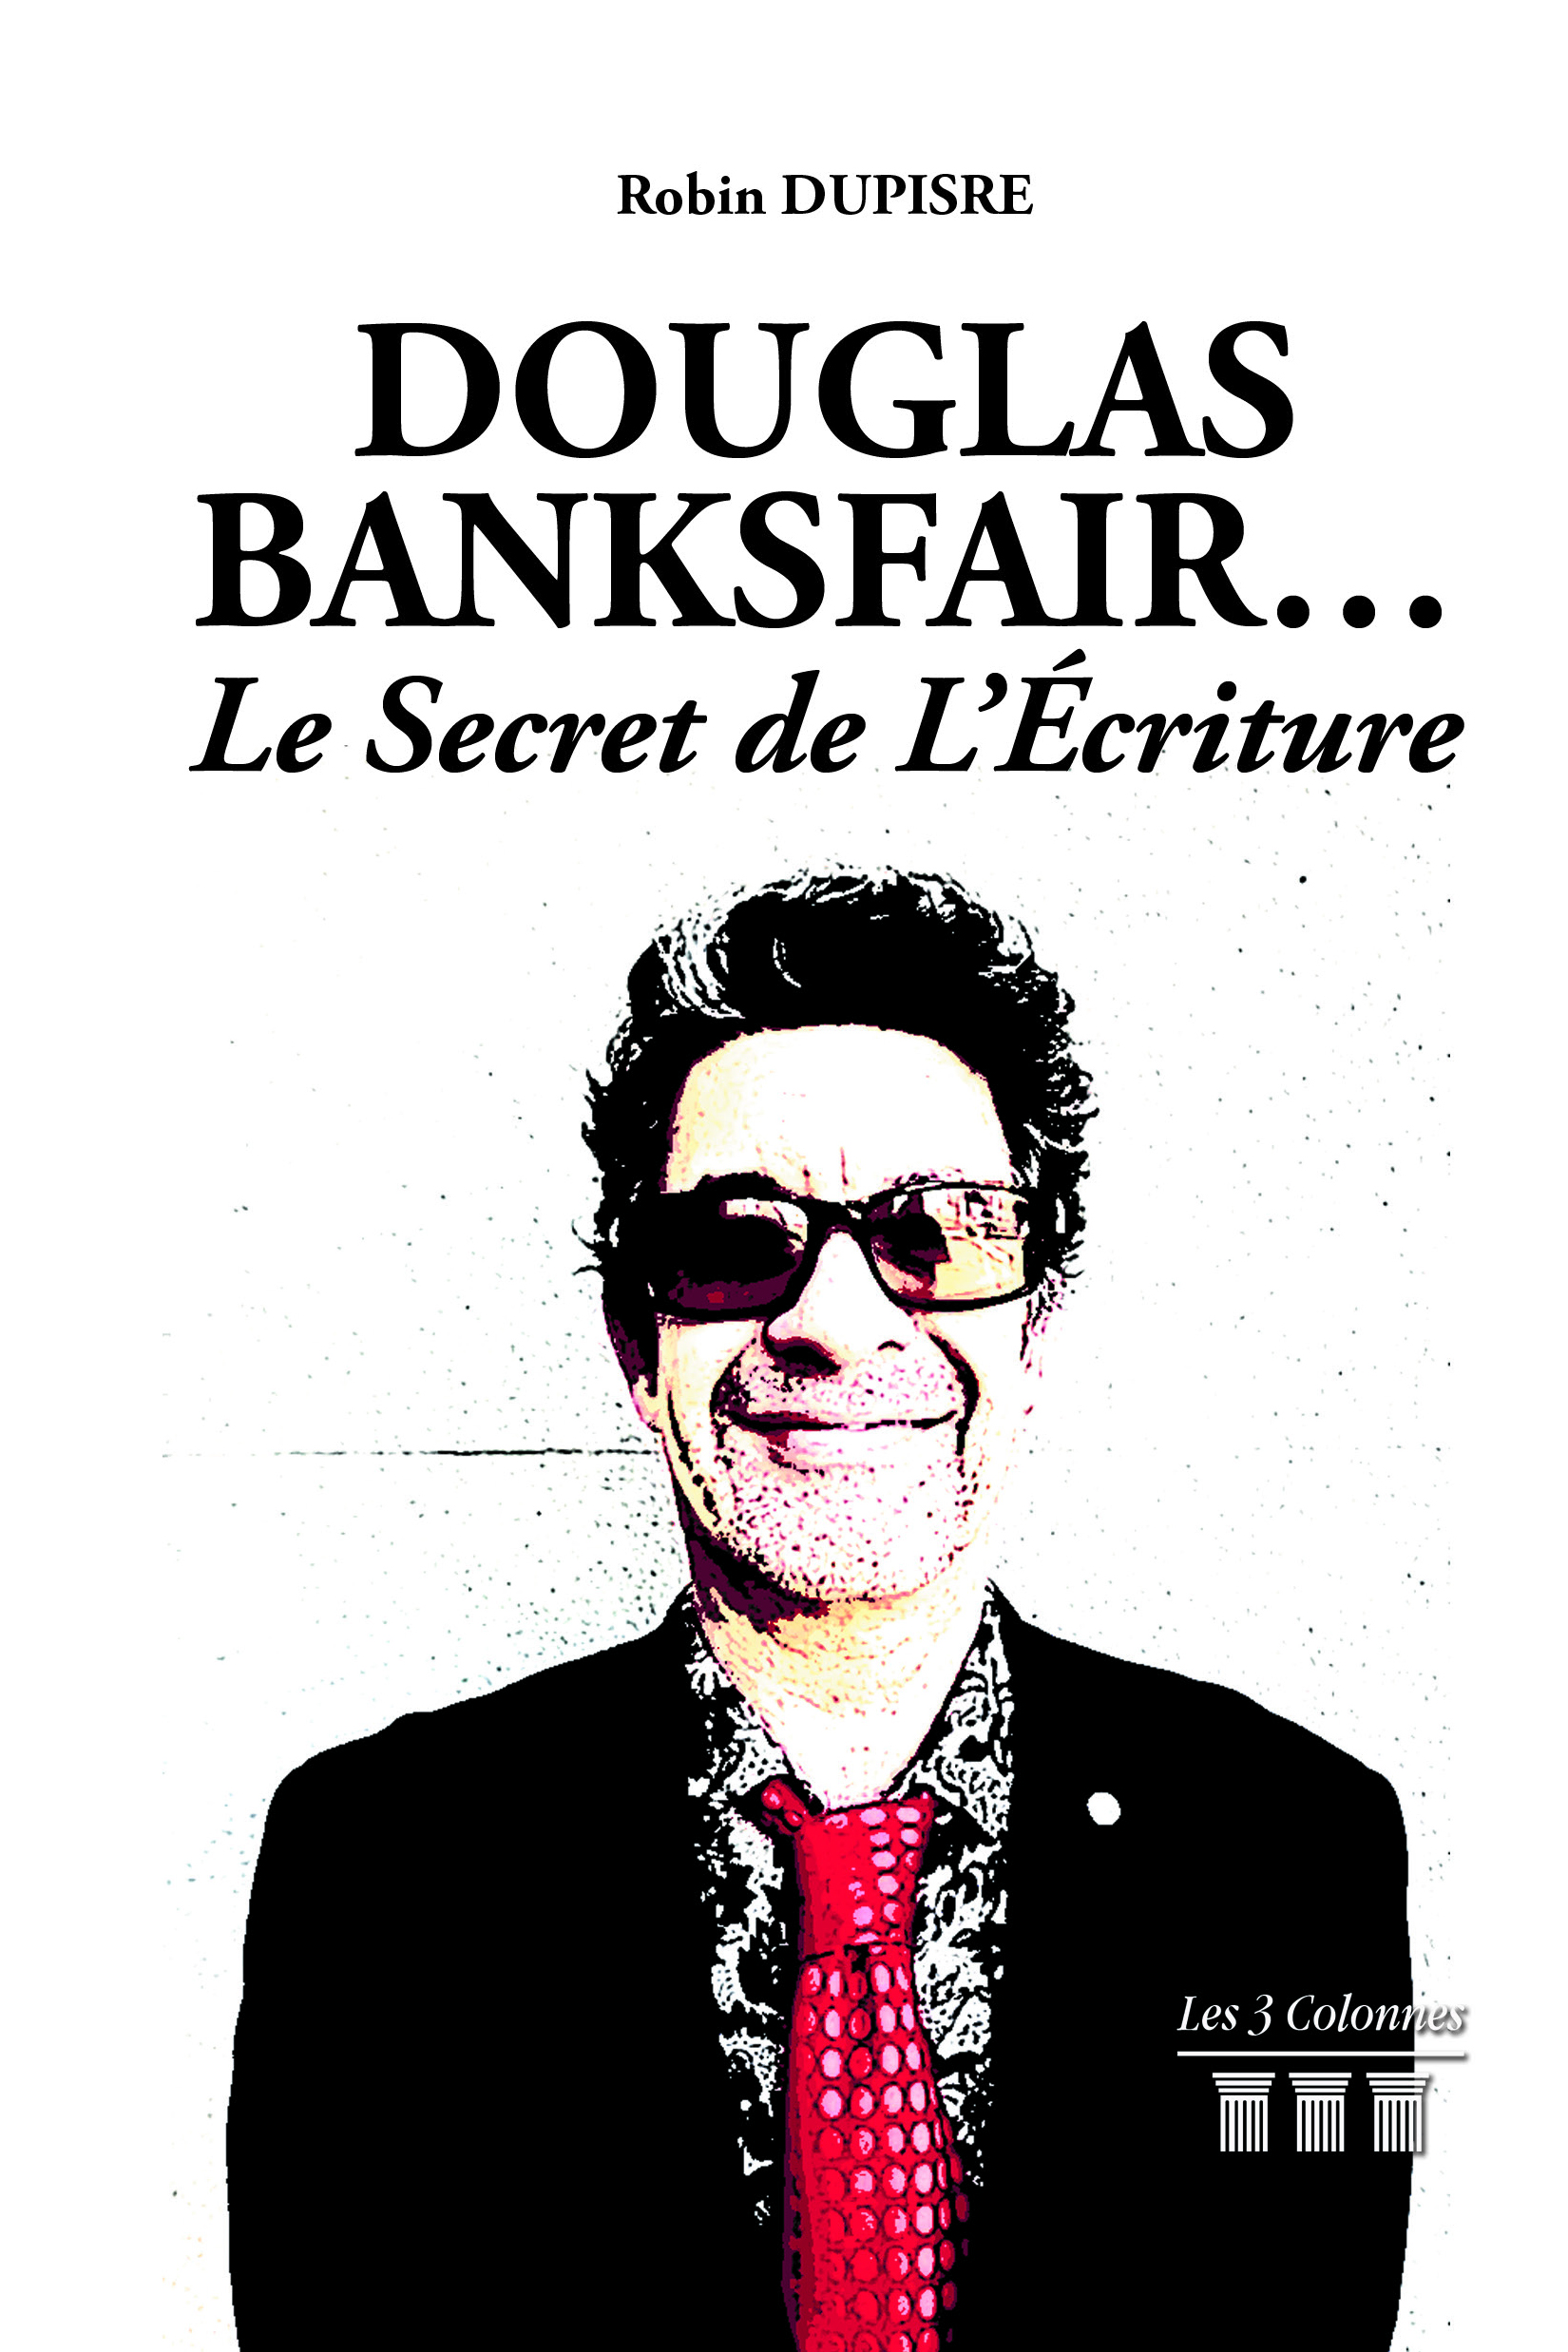 Douglas Banksfair… Le Secret de L'Écriture